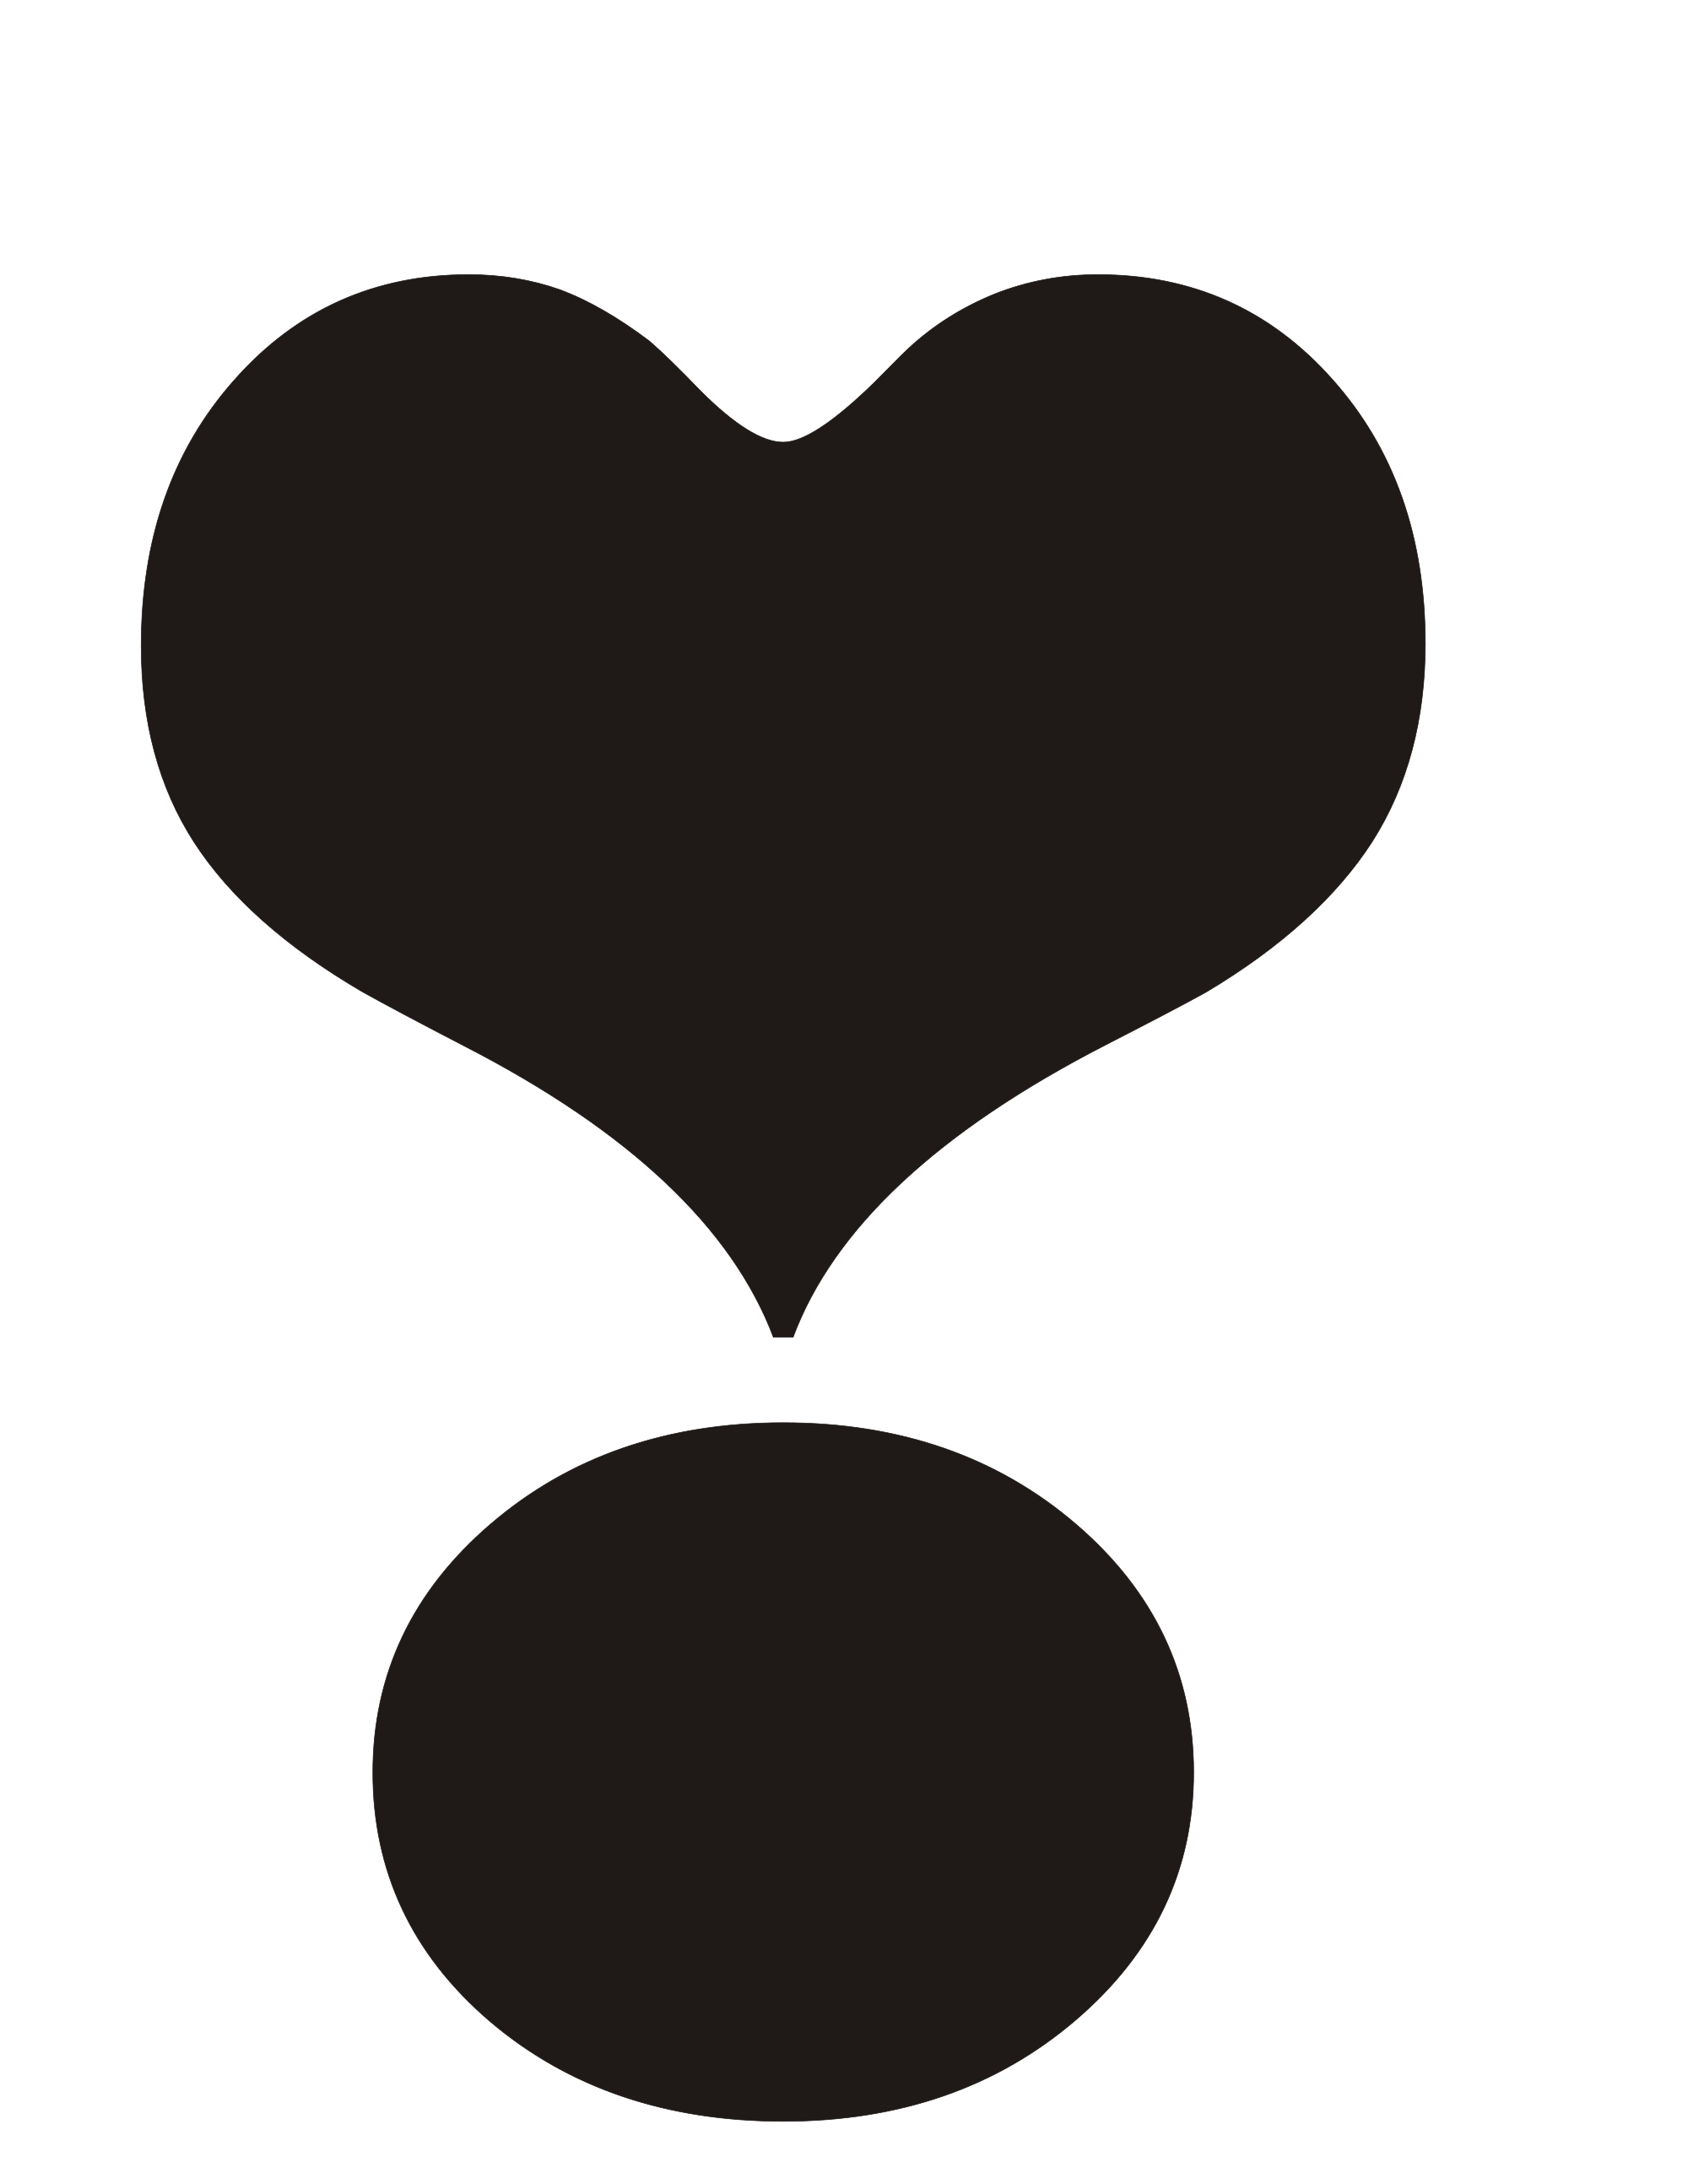 Heart black clipart graphic library stock File:Exclamation Mark Heart Black.svg - Wikimedia Commons graphic library stock